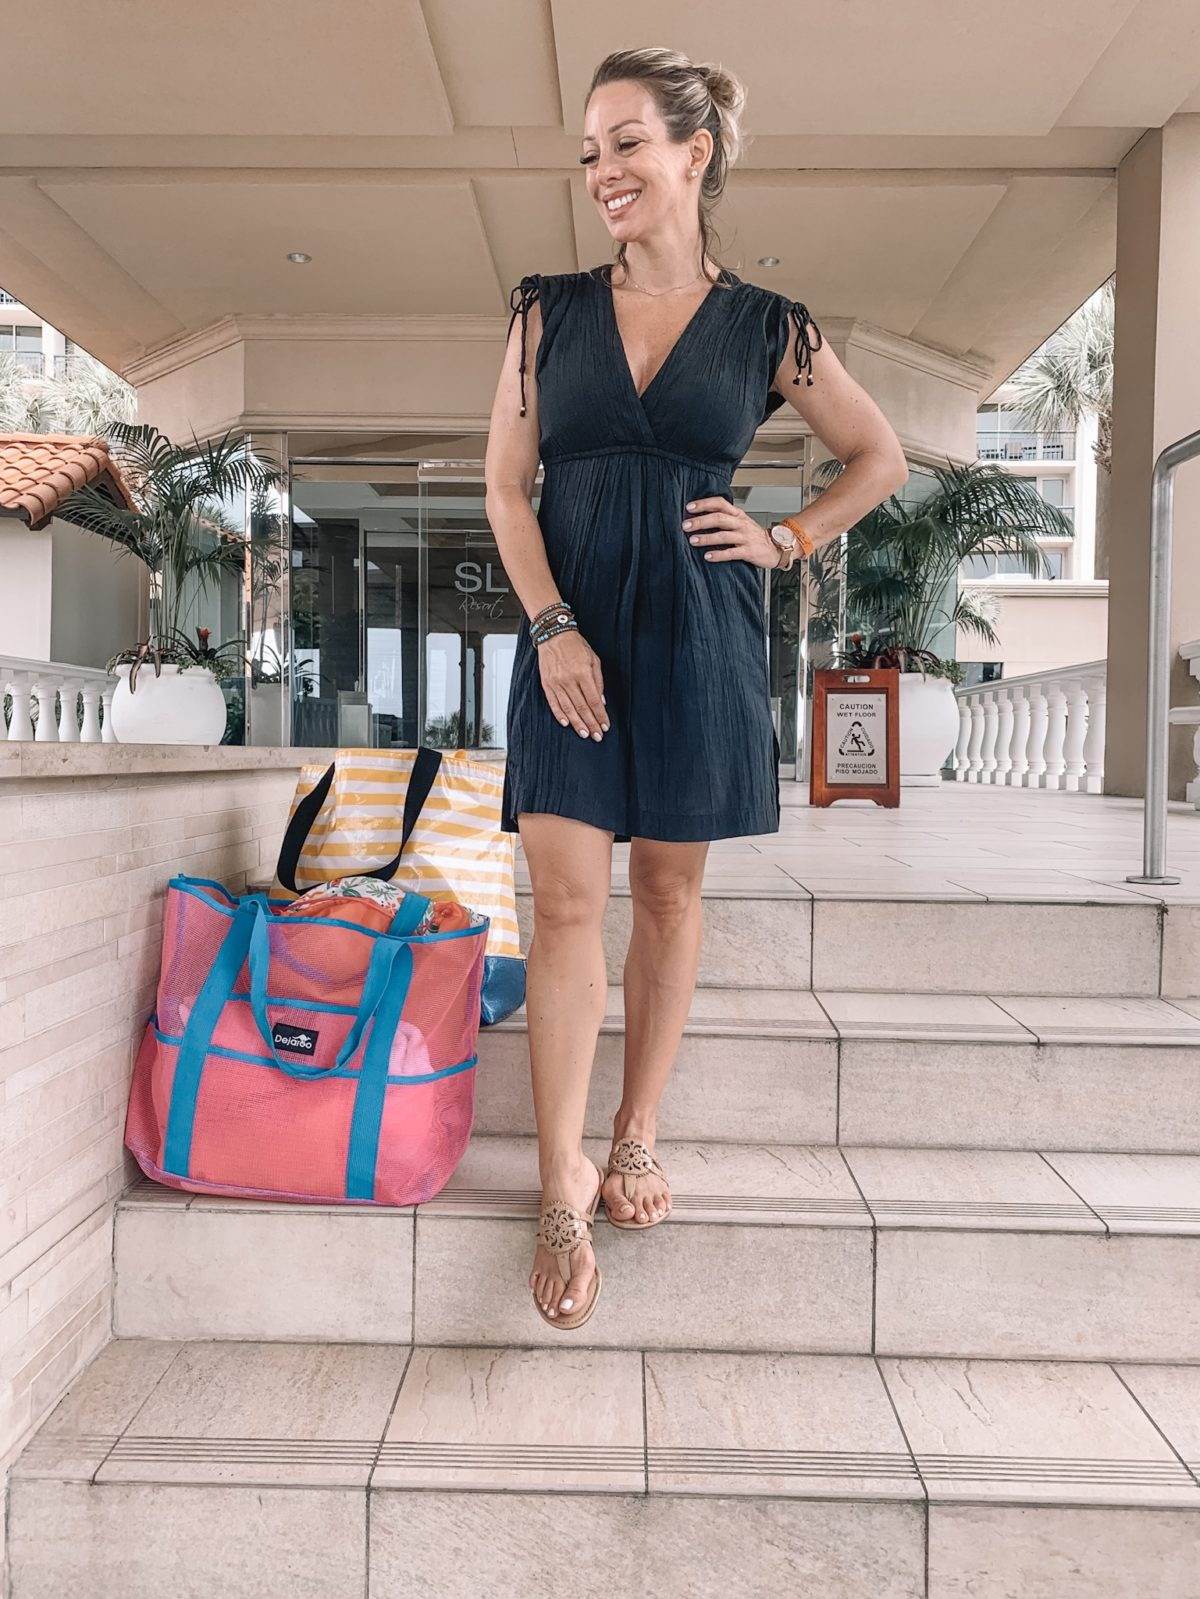 48 Hours in Galveston - Black dress and miller sandals